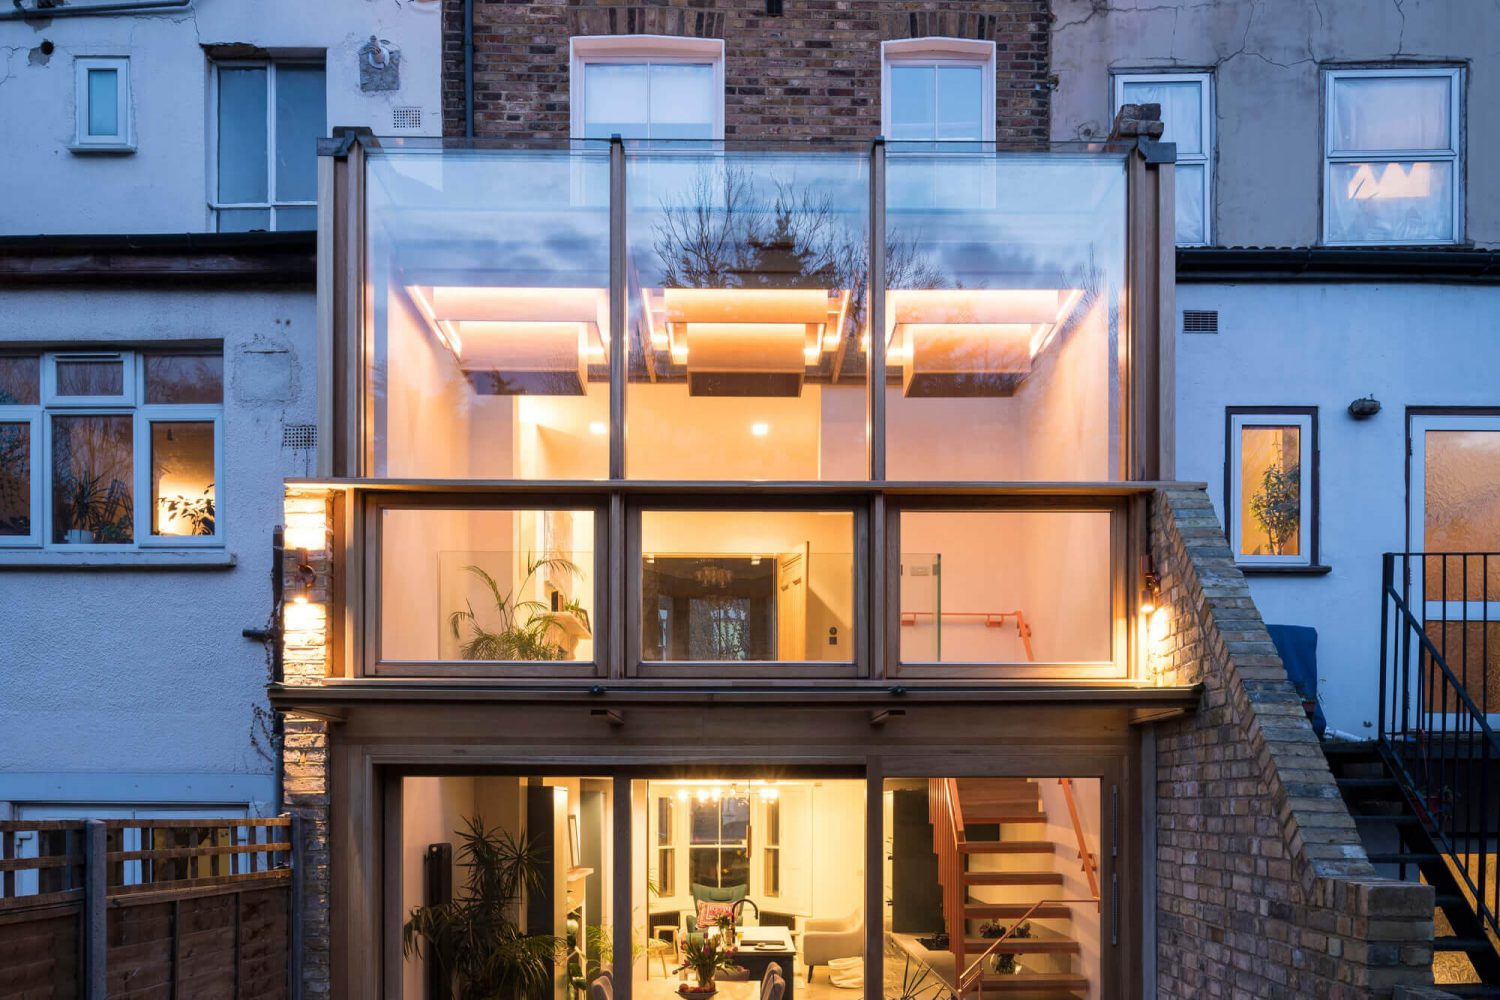 Haringey Glazed Extension by Satish Jassal Architects